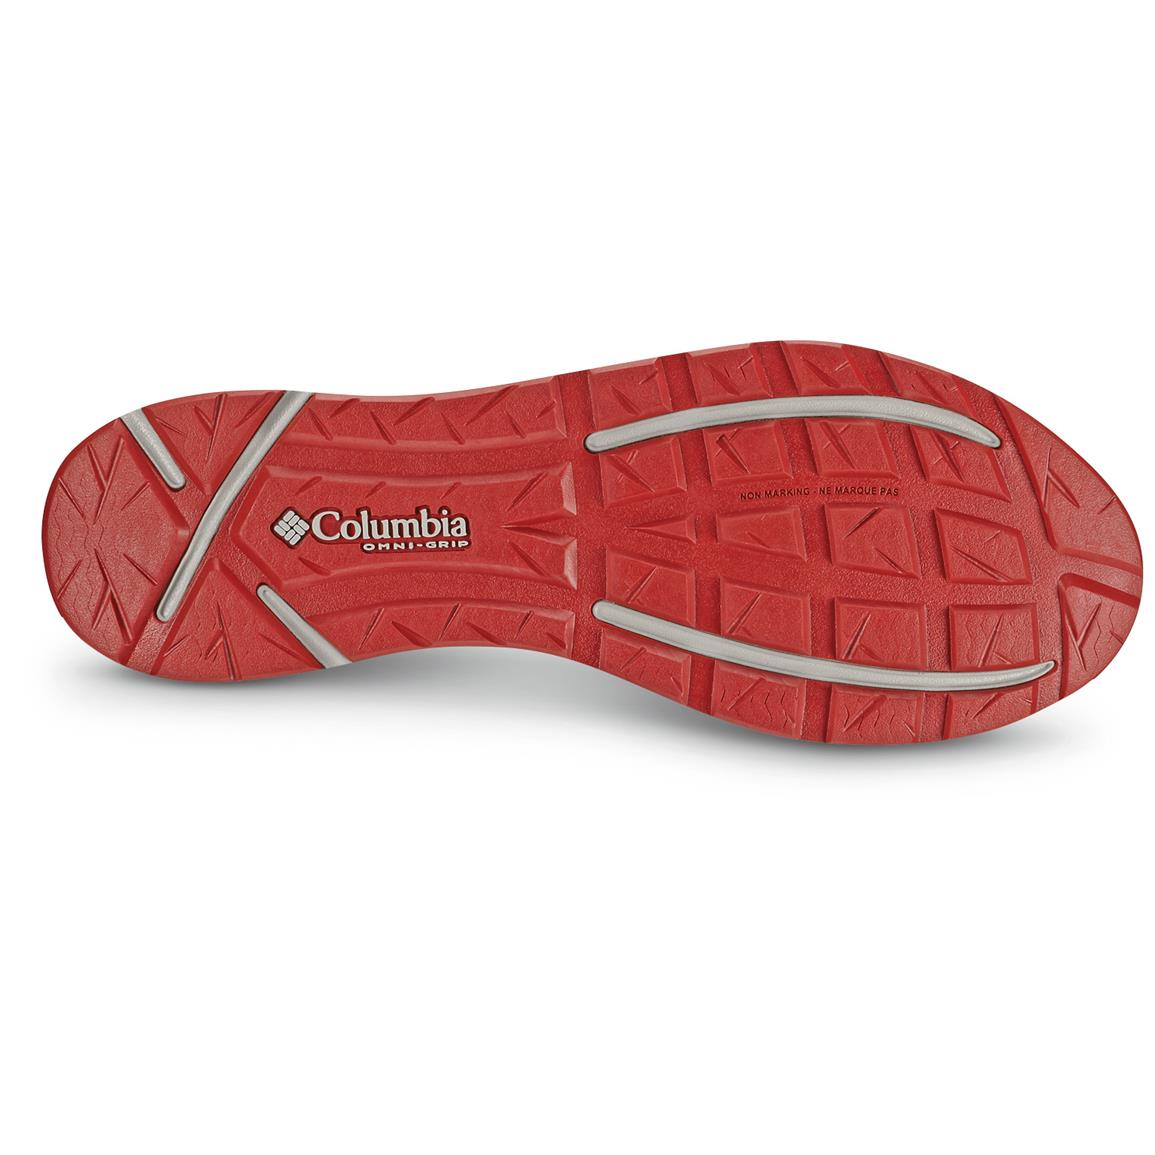 Omni-Grip high-traction rubber outsole